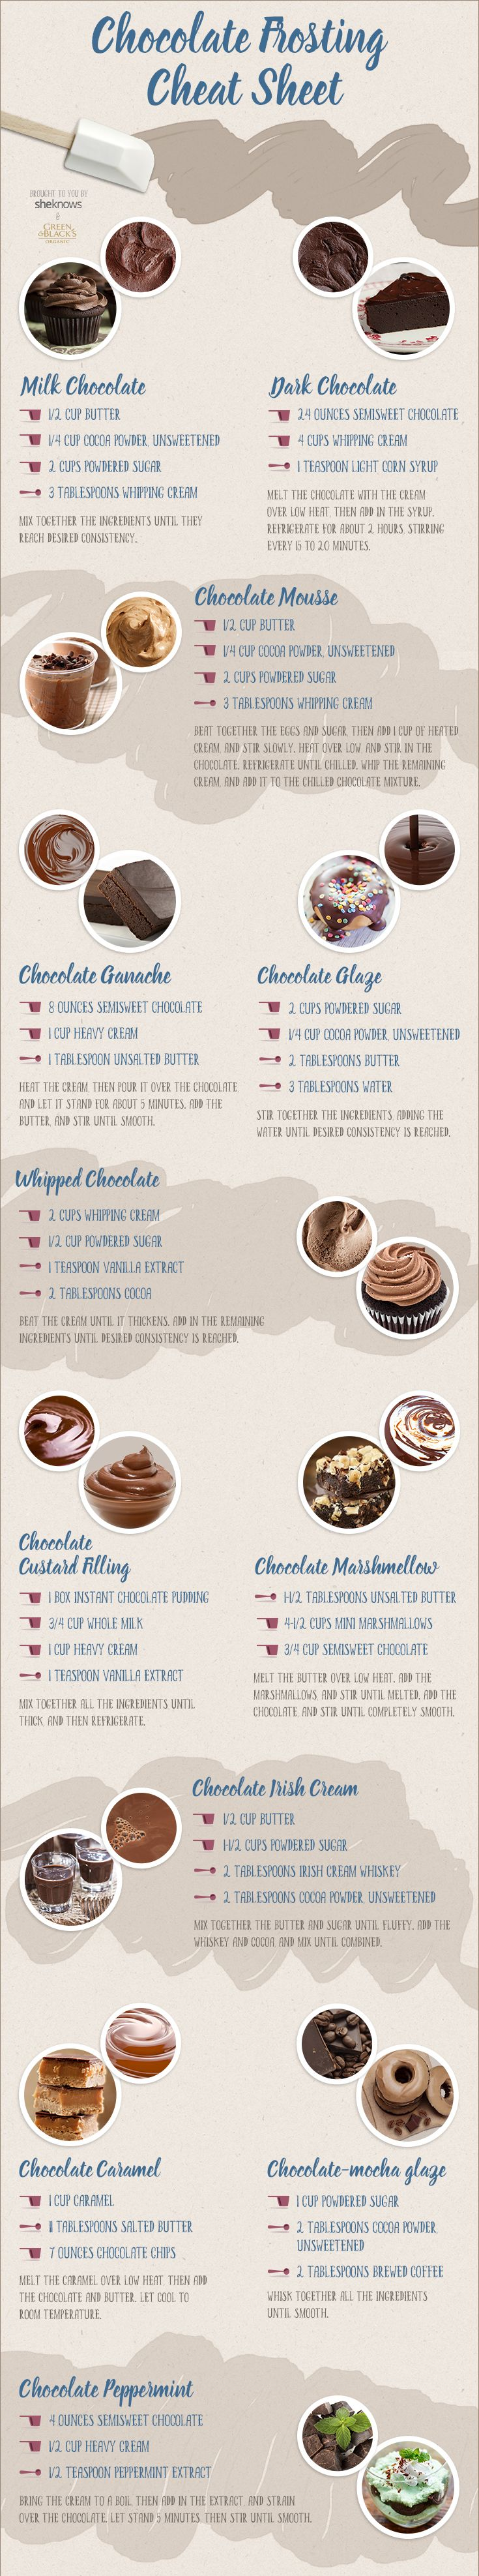 Nothing compares to a dreamy, luxuriant chocolate frosting — and we've got 12 recipes ready to go for you in one infographic.